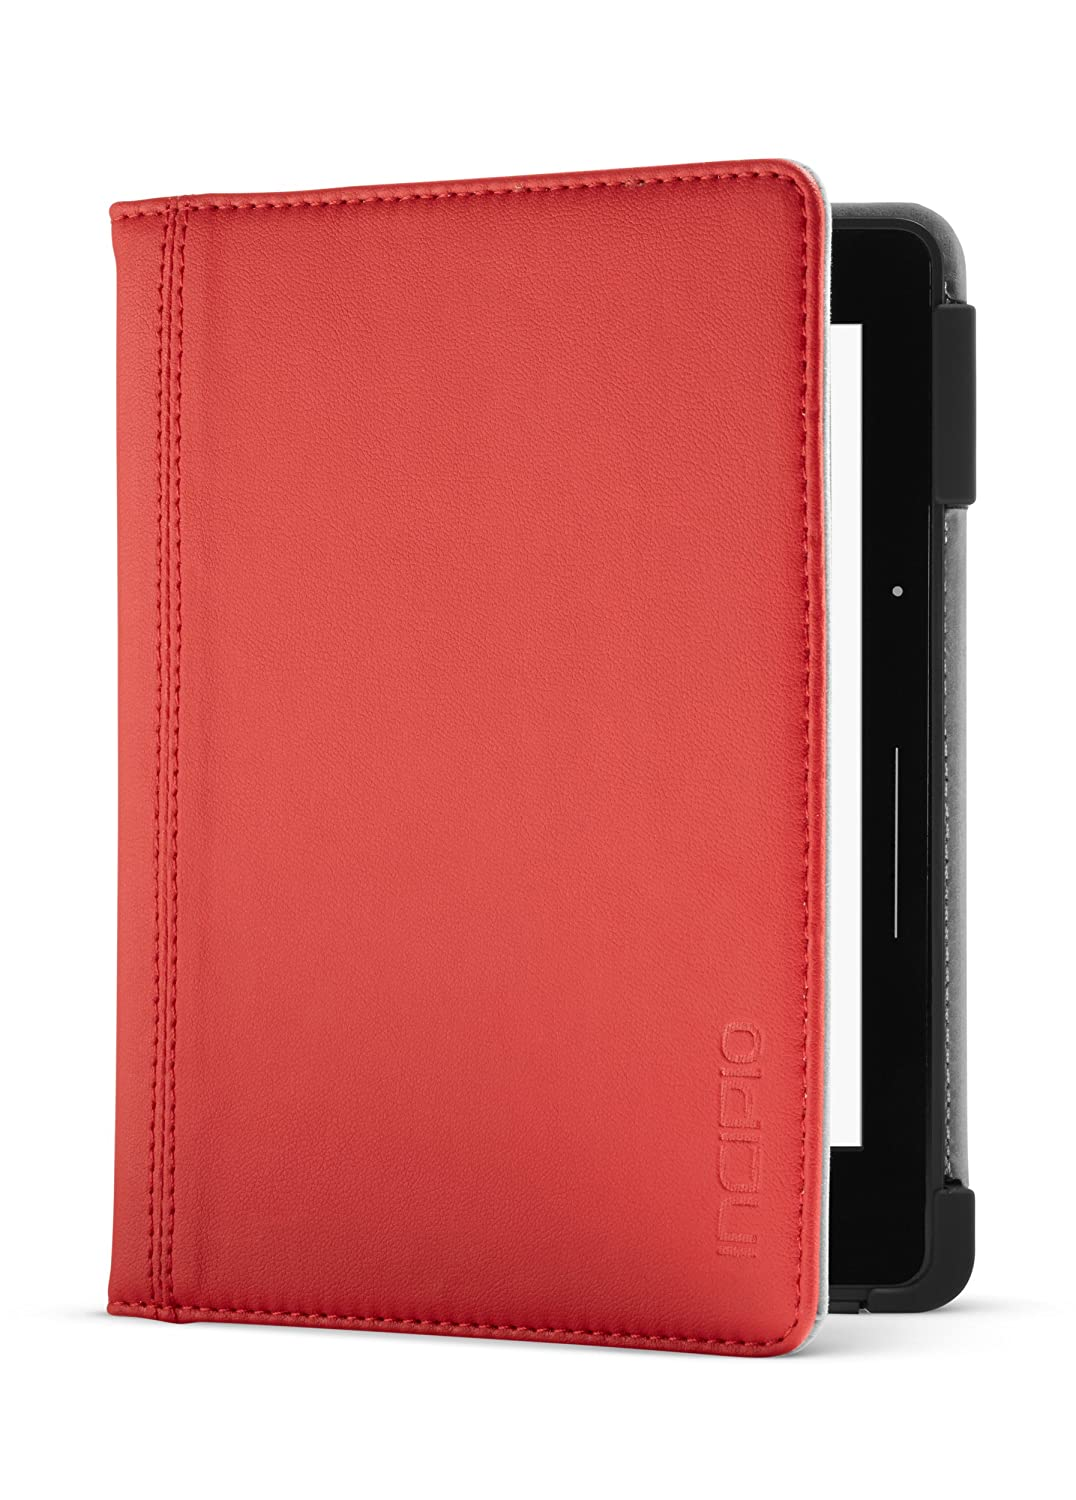 Incipio Journal Solid Incipio (Kindle Accessories) AK-413-BLK